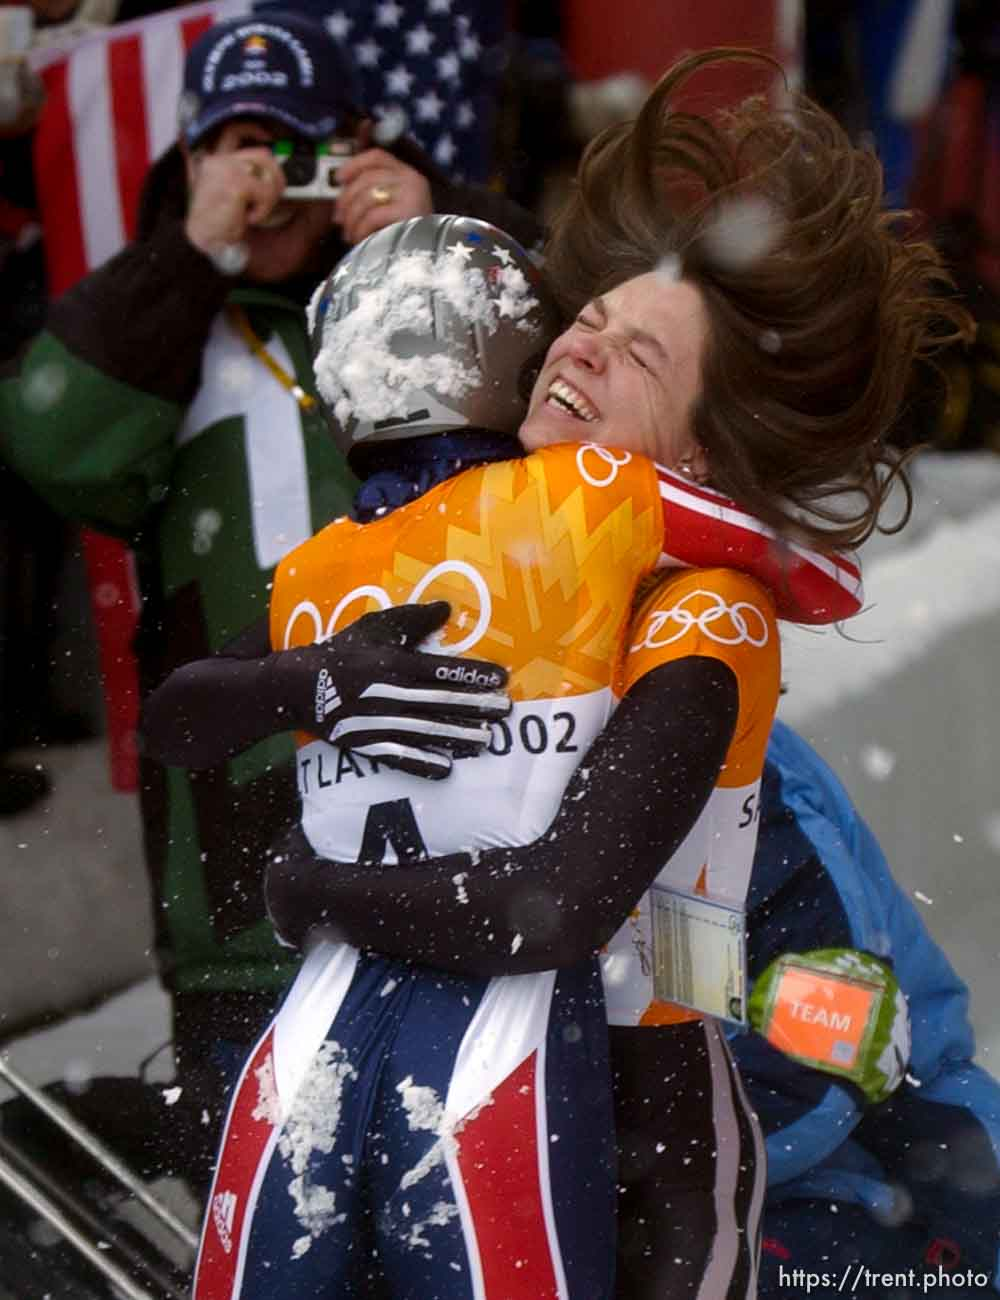 USA skeleton athletes Lea Ann Parsley (top, silver medalist) and Tristan Gale (gold medalist) celebrate. Skeleton, Wednesday morning at the Utah Olympic Park, 2002 Olympic Winter Games.; 02.20.2002, 11:56:59 AM